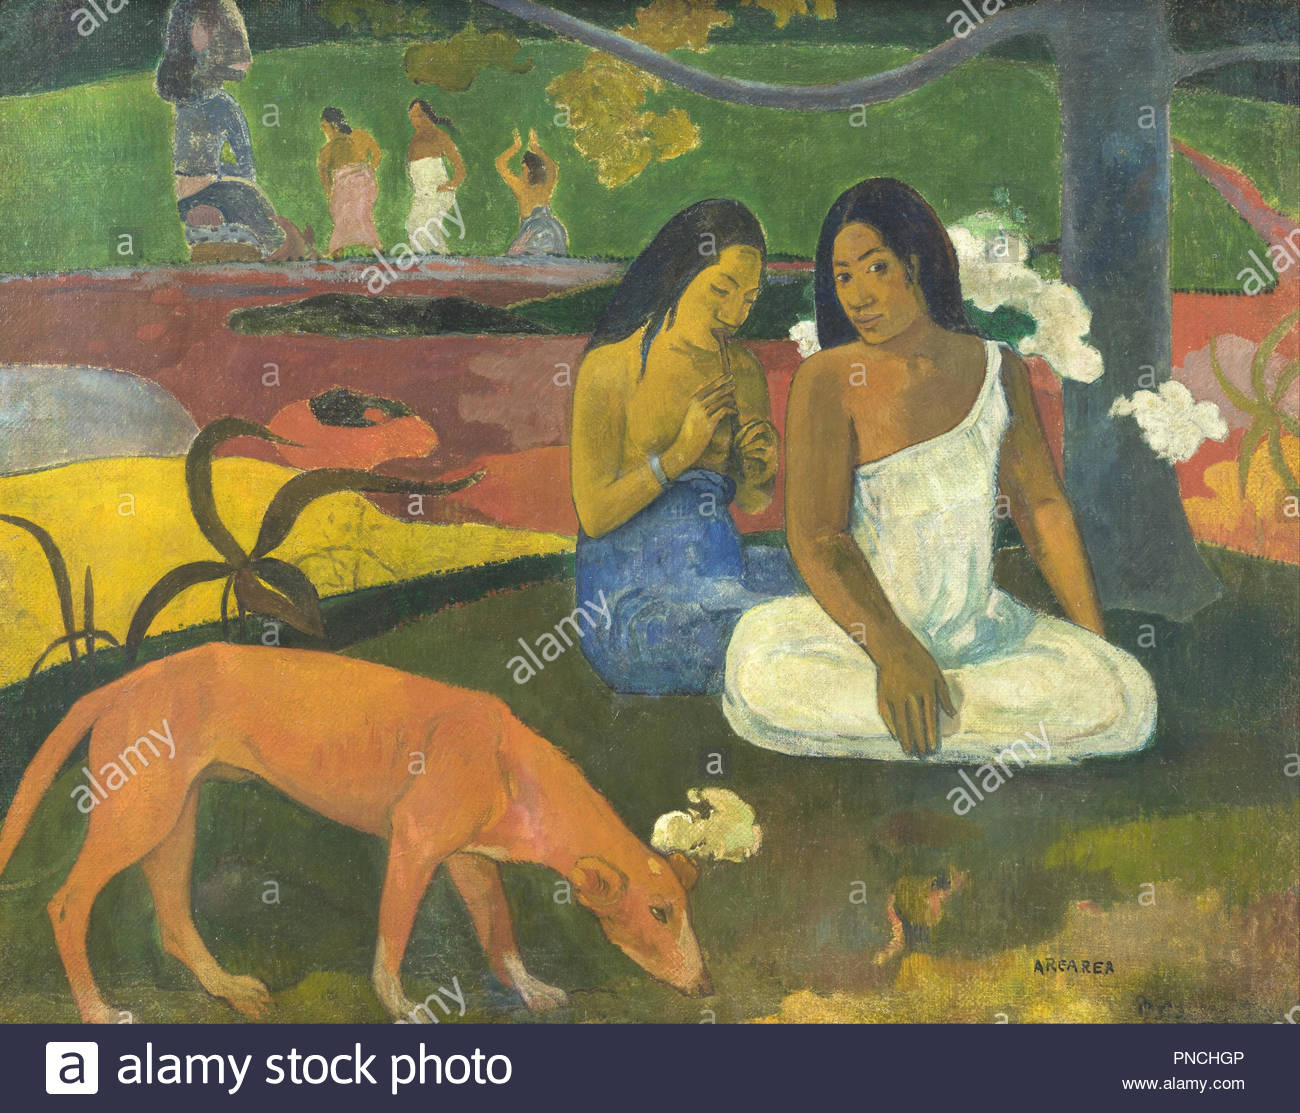 Arearea / Joyfulness. Date/Period: December 1892. Painting. Oil on canvas. Height: 74.5 cm (29.3 in); Width: 93.5 cm (36.8 in). Author: PAUL GAUGUIN. GAUGUIN, PAUL. Gauguin, Paul Eugéne Henri. - Stock Image